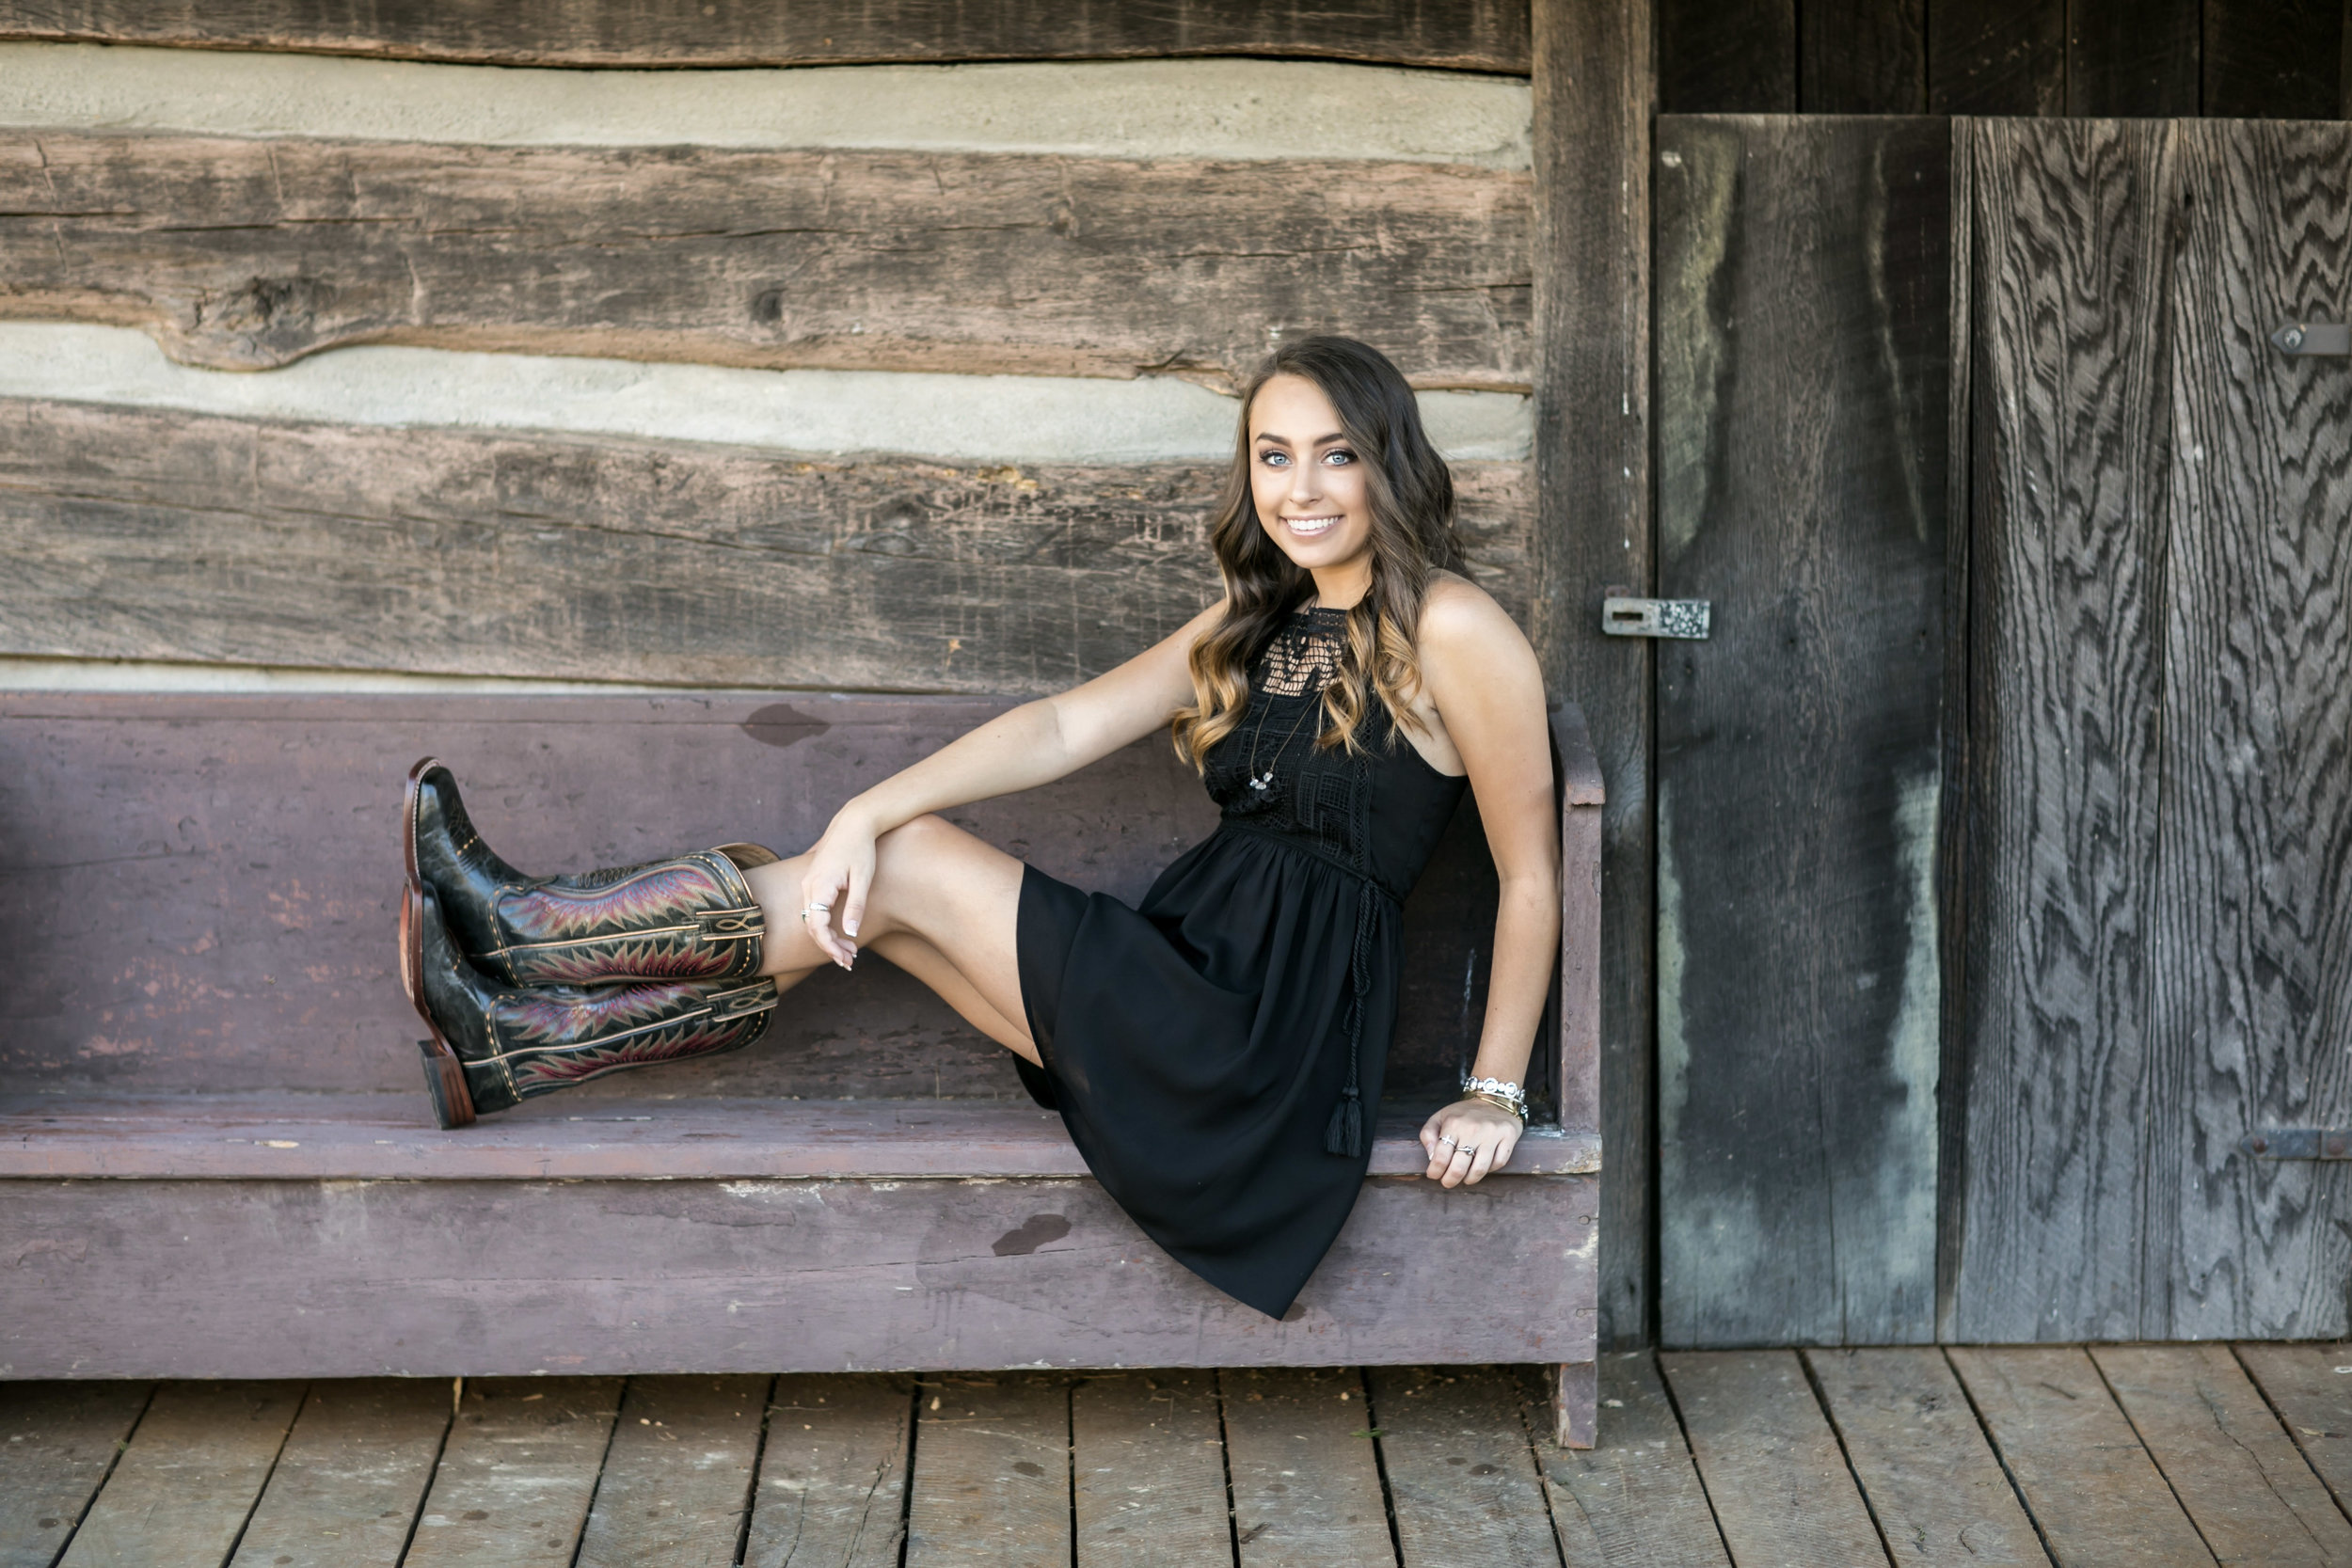 HIgh School Senior Baylee